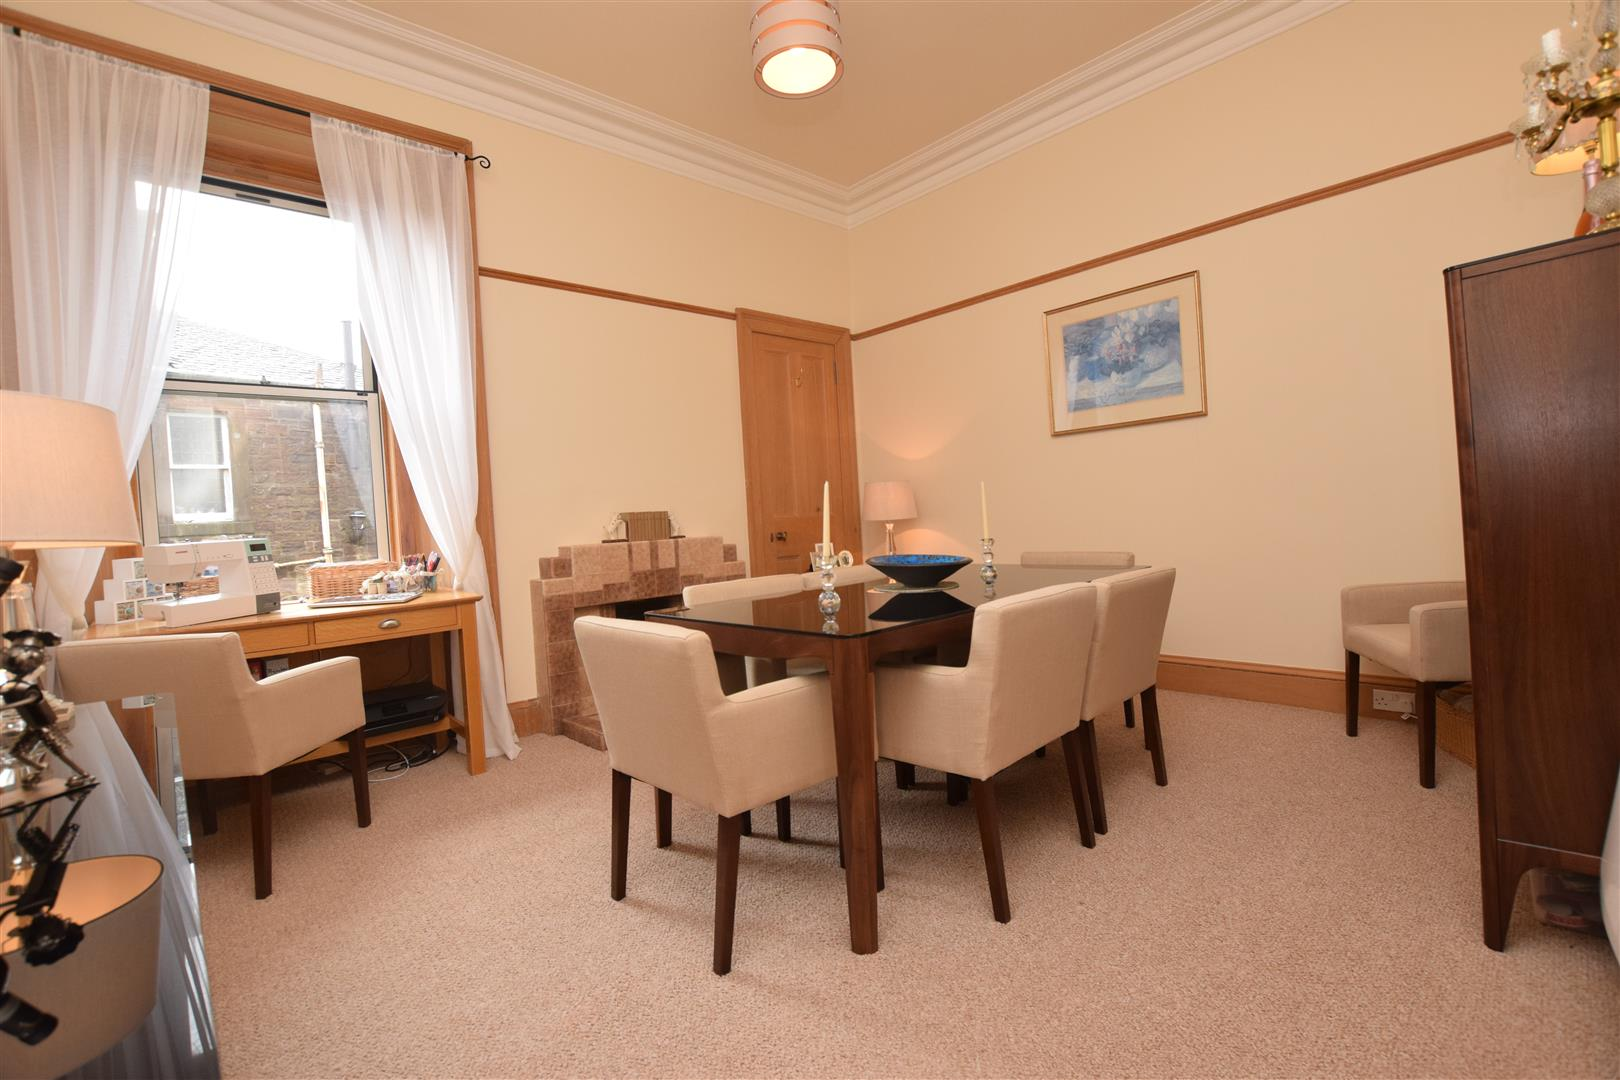 Upper Flat, 8, Union Terrace, Dundee, Angus, DD3 6JD, UK